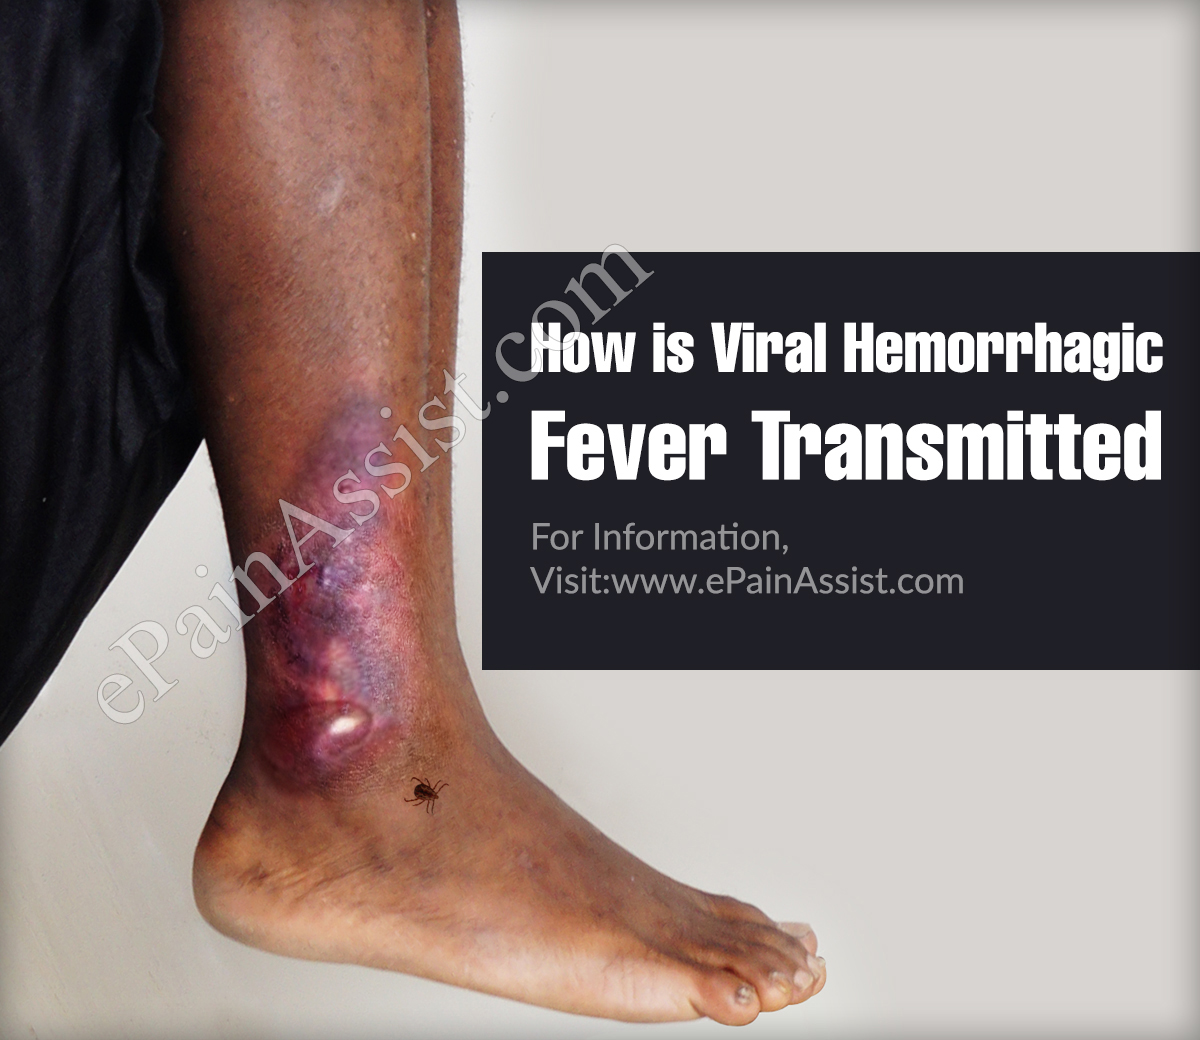 How is Viral Hemorrhagic Fever Transmitted?